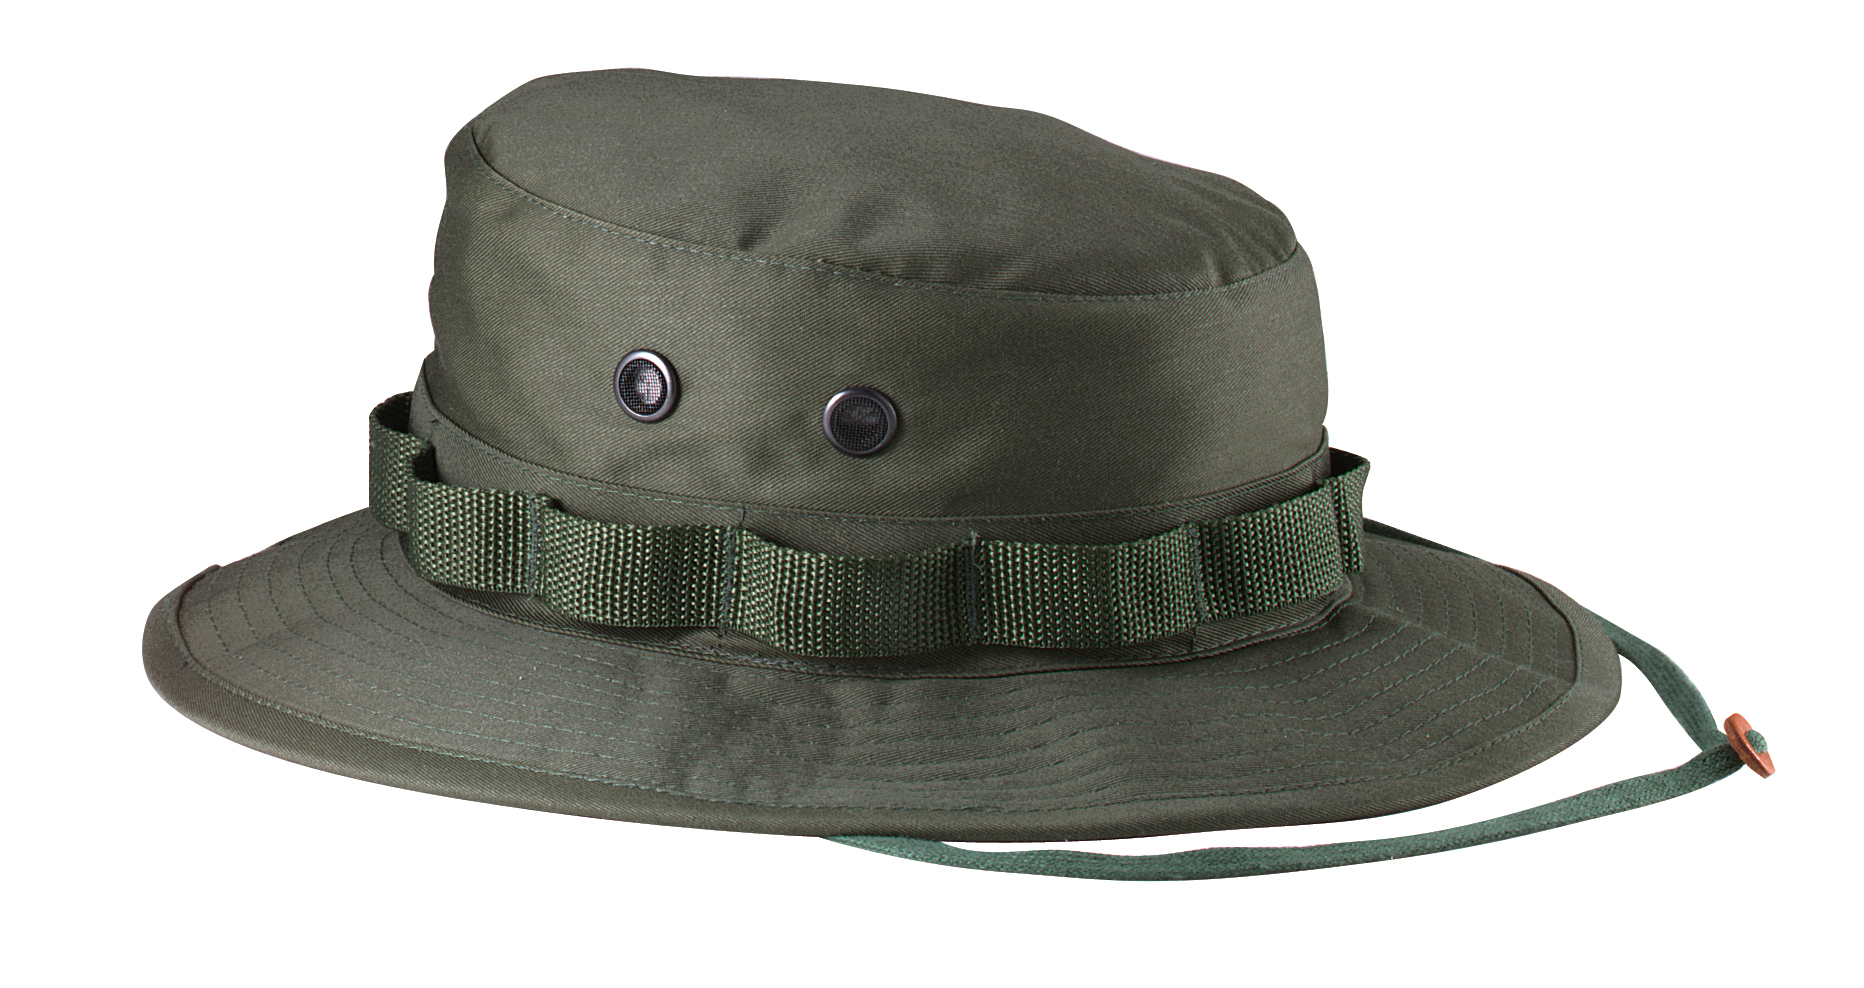 Rothco 5823 100% Cotton Rip-Stop Boonie Hat - Olive Drab  9be09bf5afb0